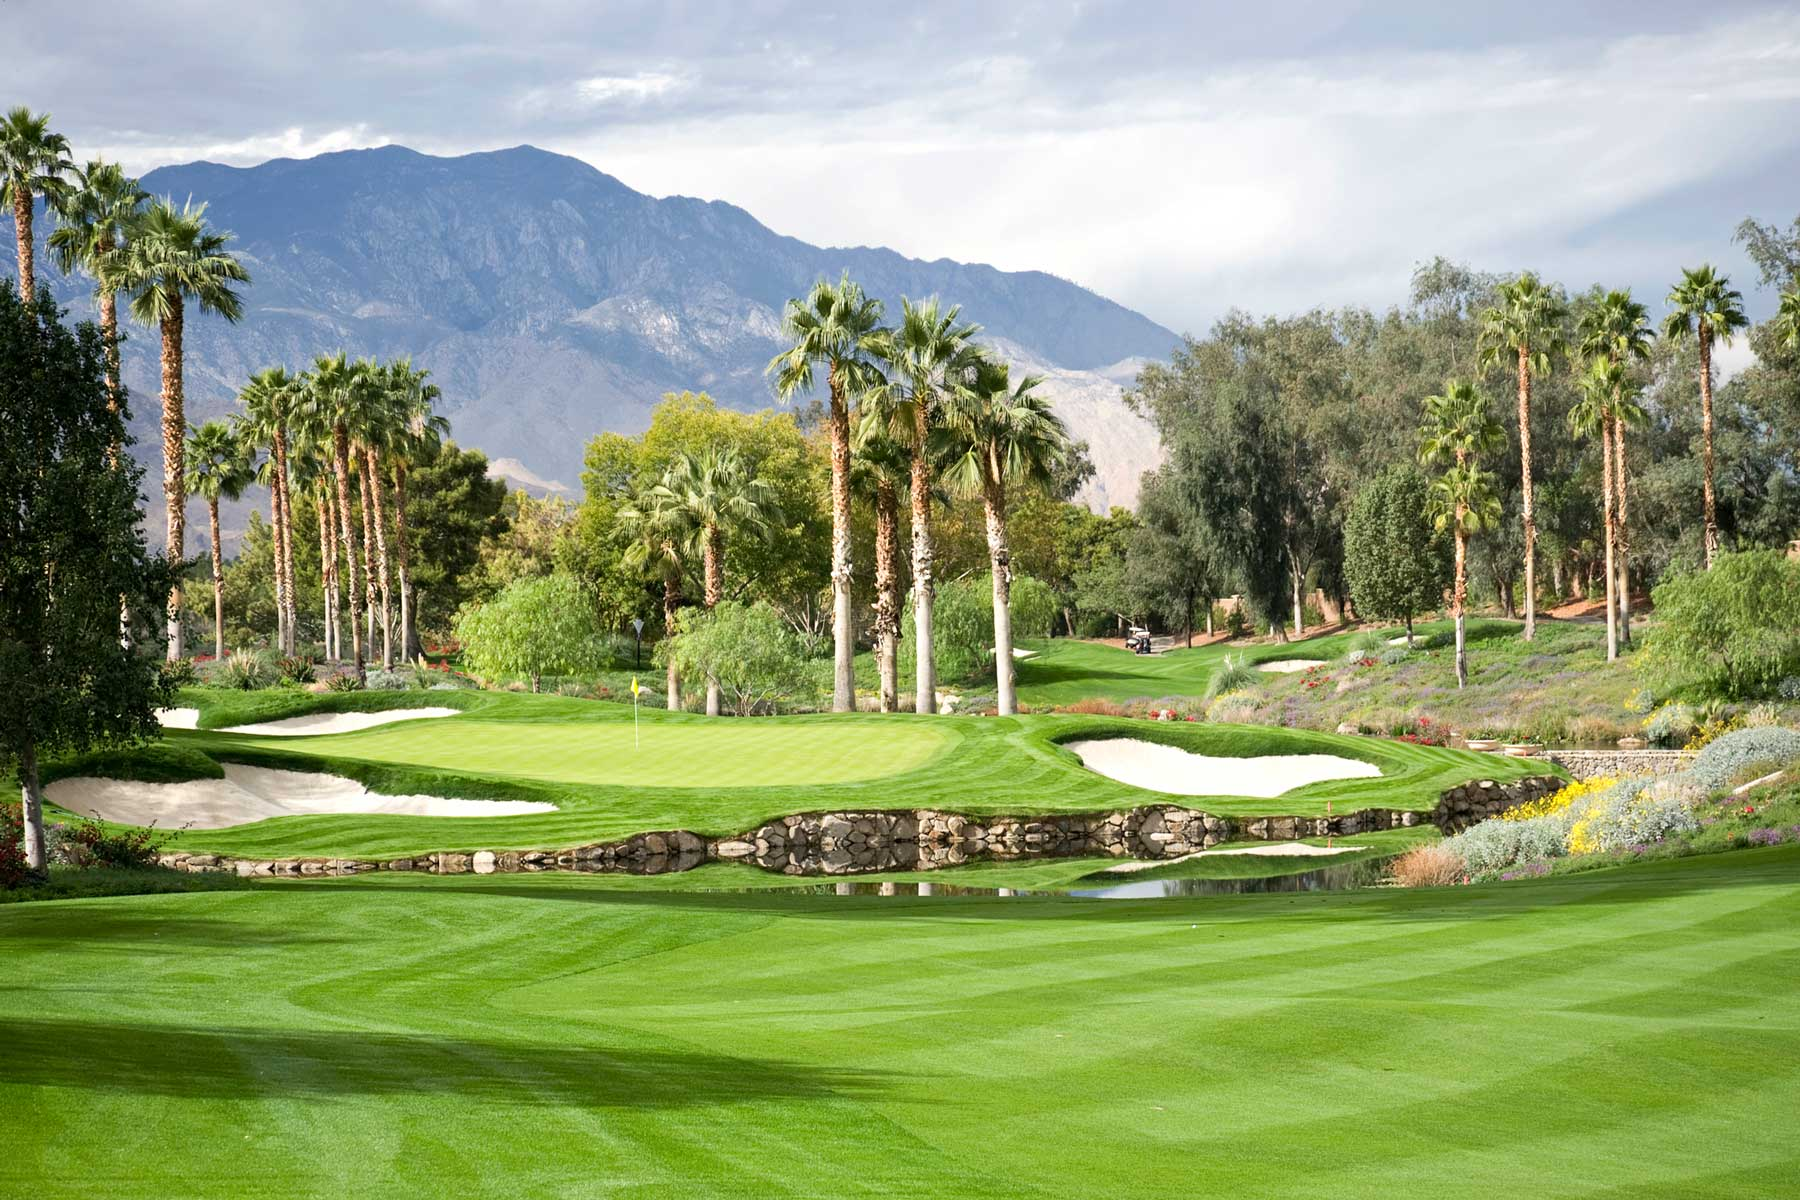 Golf course with palm trees and mountains in the distance